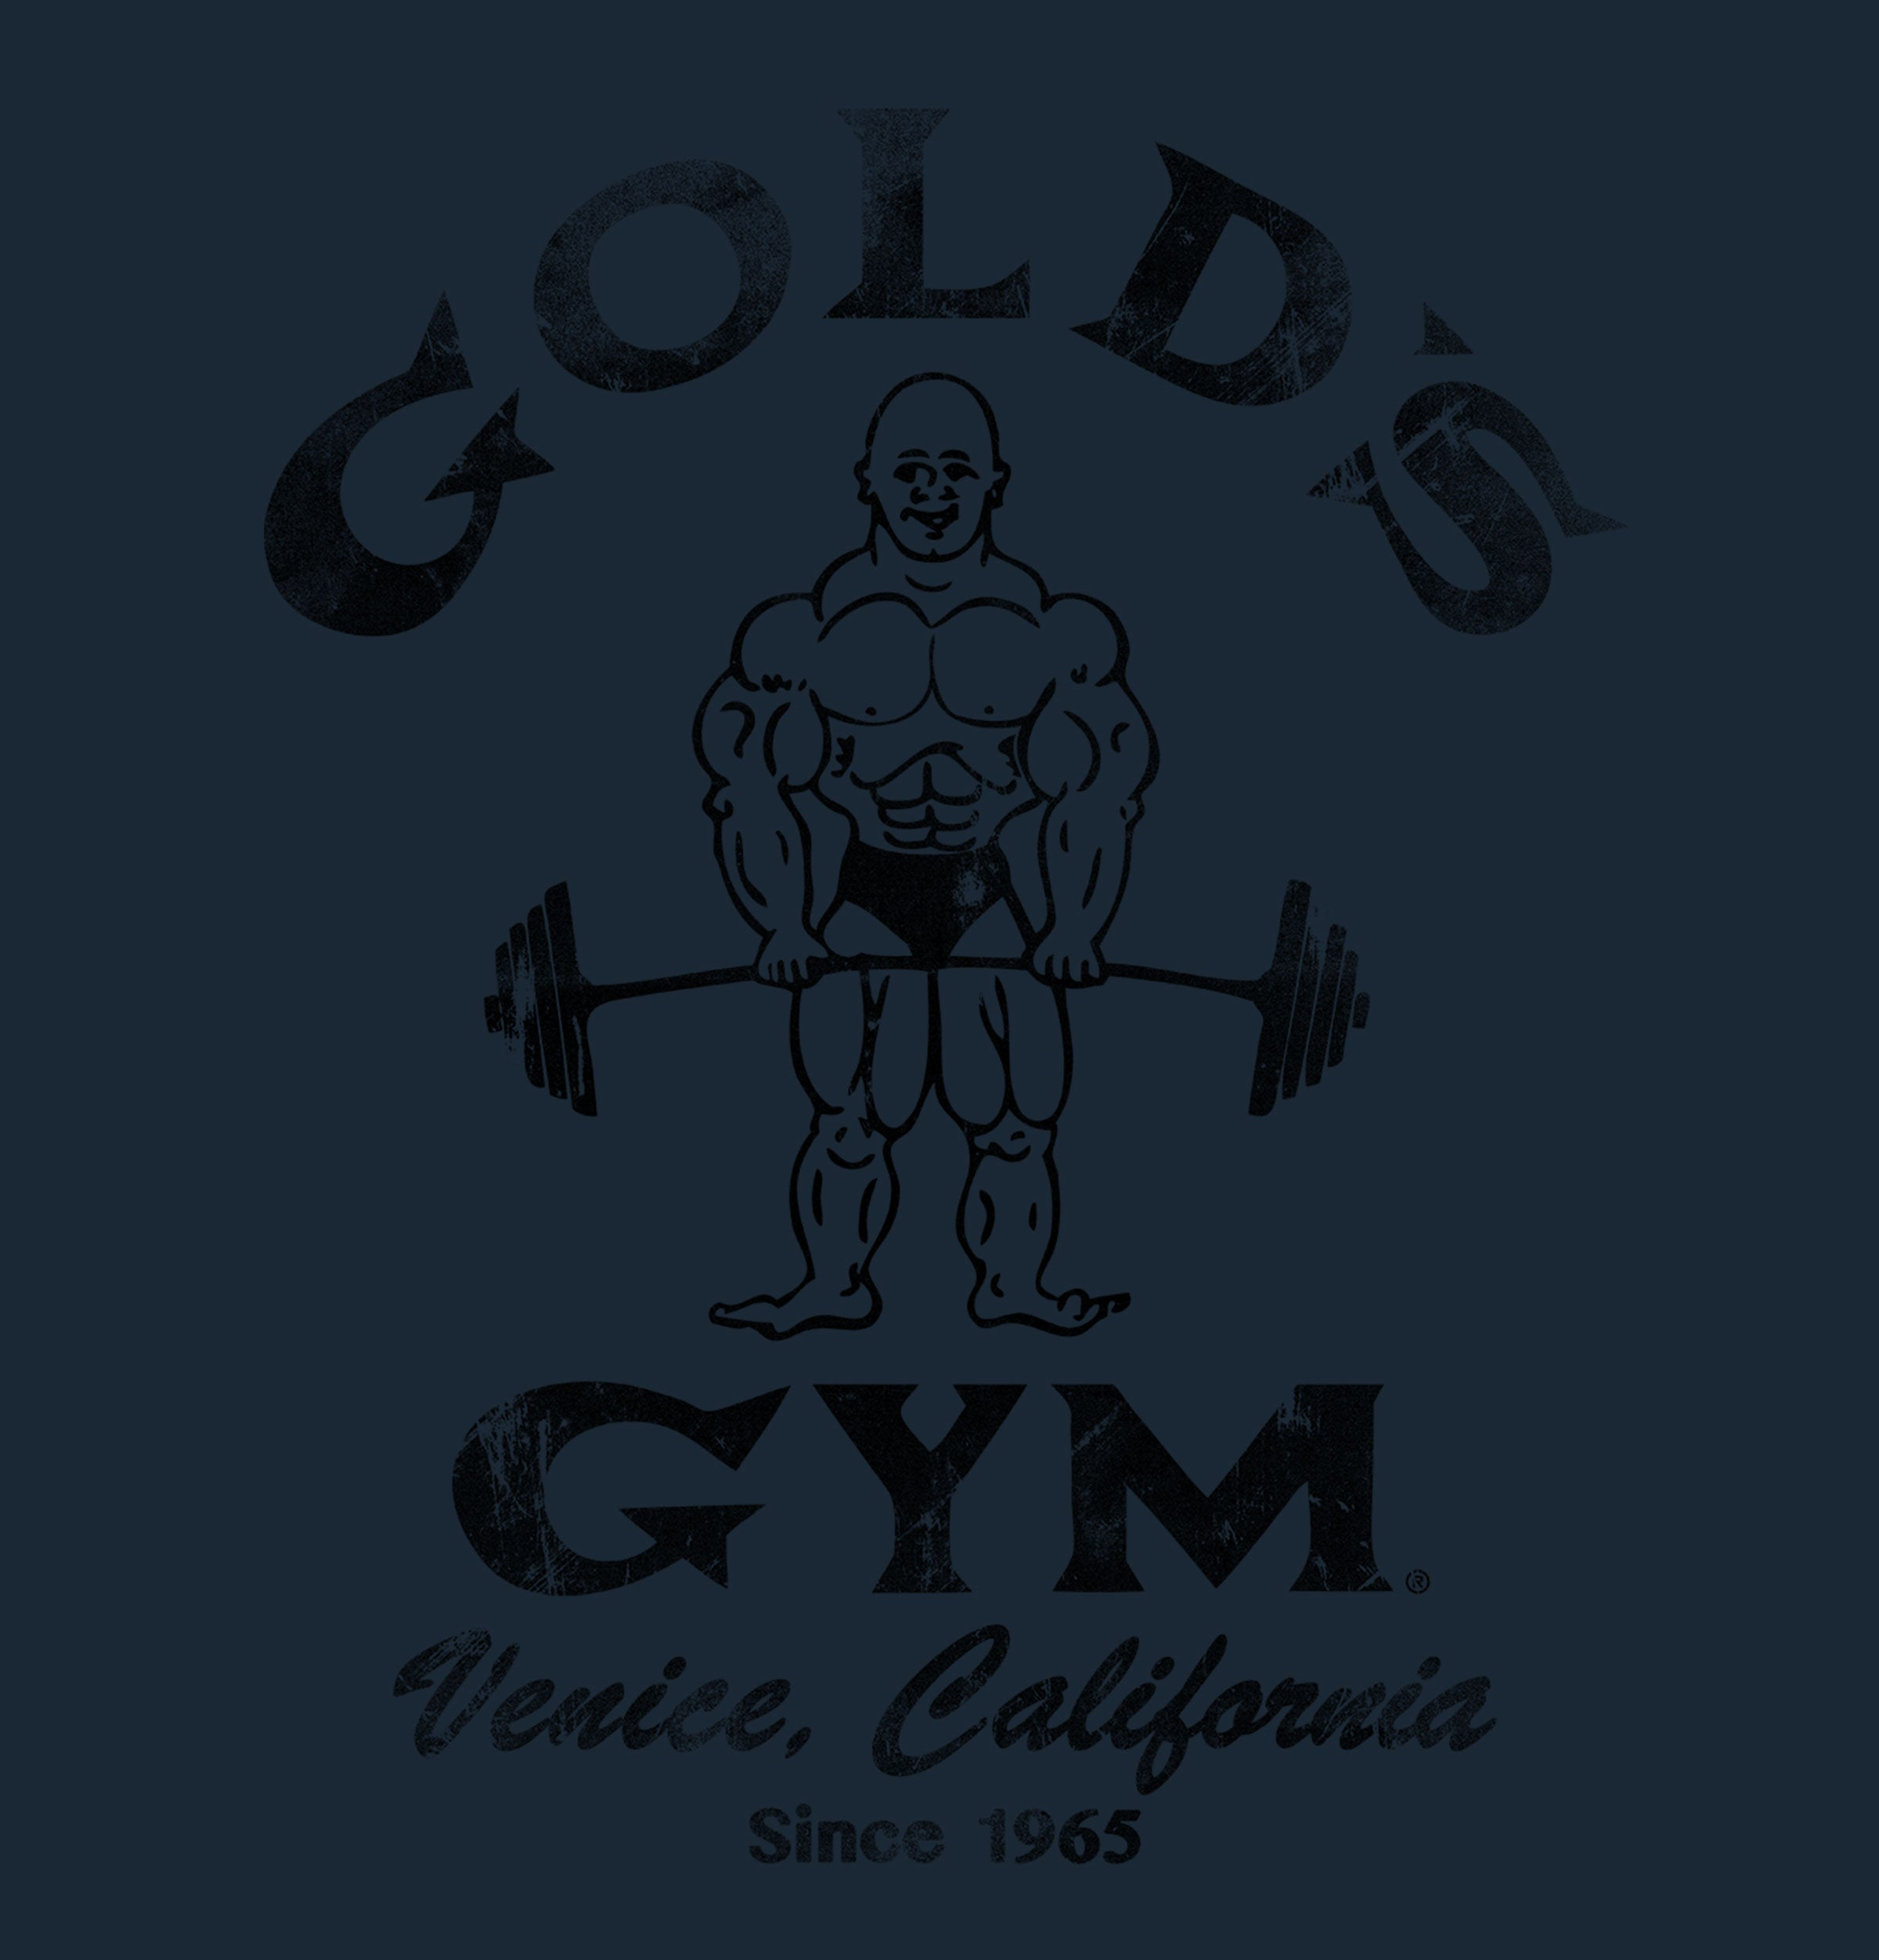 Gold's Gym Venice California Strongman Vintage Graphic T-shirt - Blue